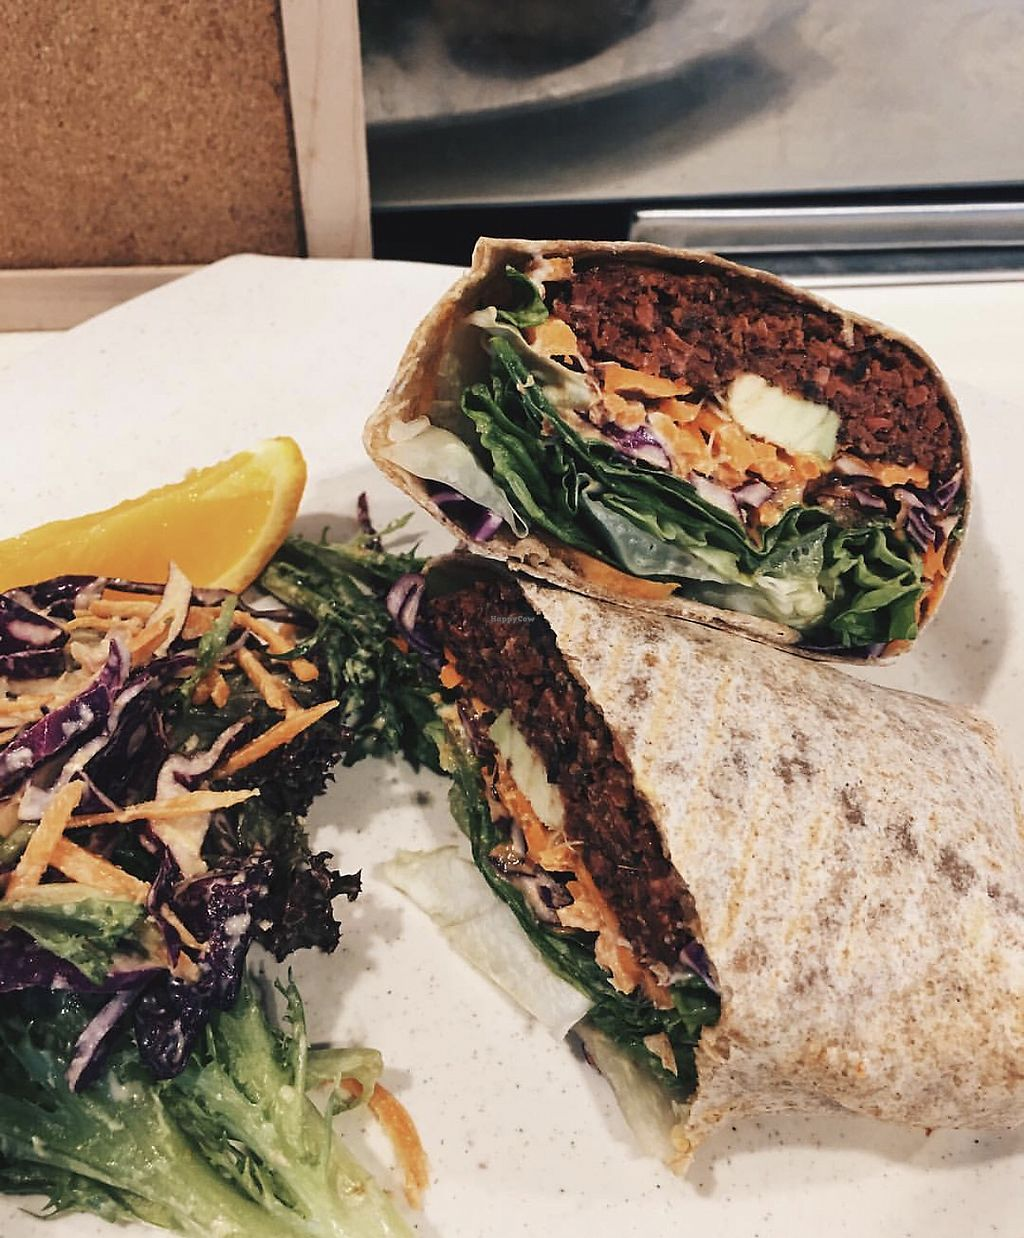 "Photo of The Wholefood Kitchen  by <a href=""/members/profile/CherylQuincy"">CherylQuincy</a> <br/>Hard-to-BEET Borscht Chickpea Patties with Avocado, wrapped in wholewheat wrap <br/> January 21, 2018  - <a href='/contact/abuse/image/75426/349159'>Report</a>"